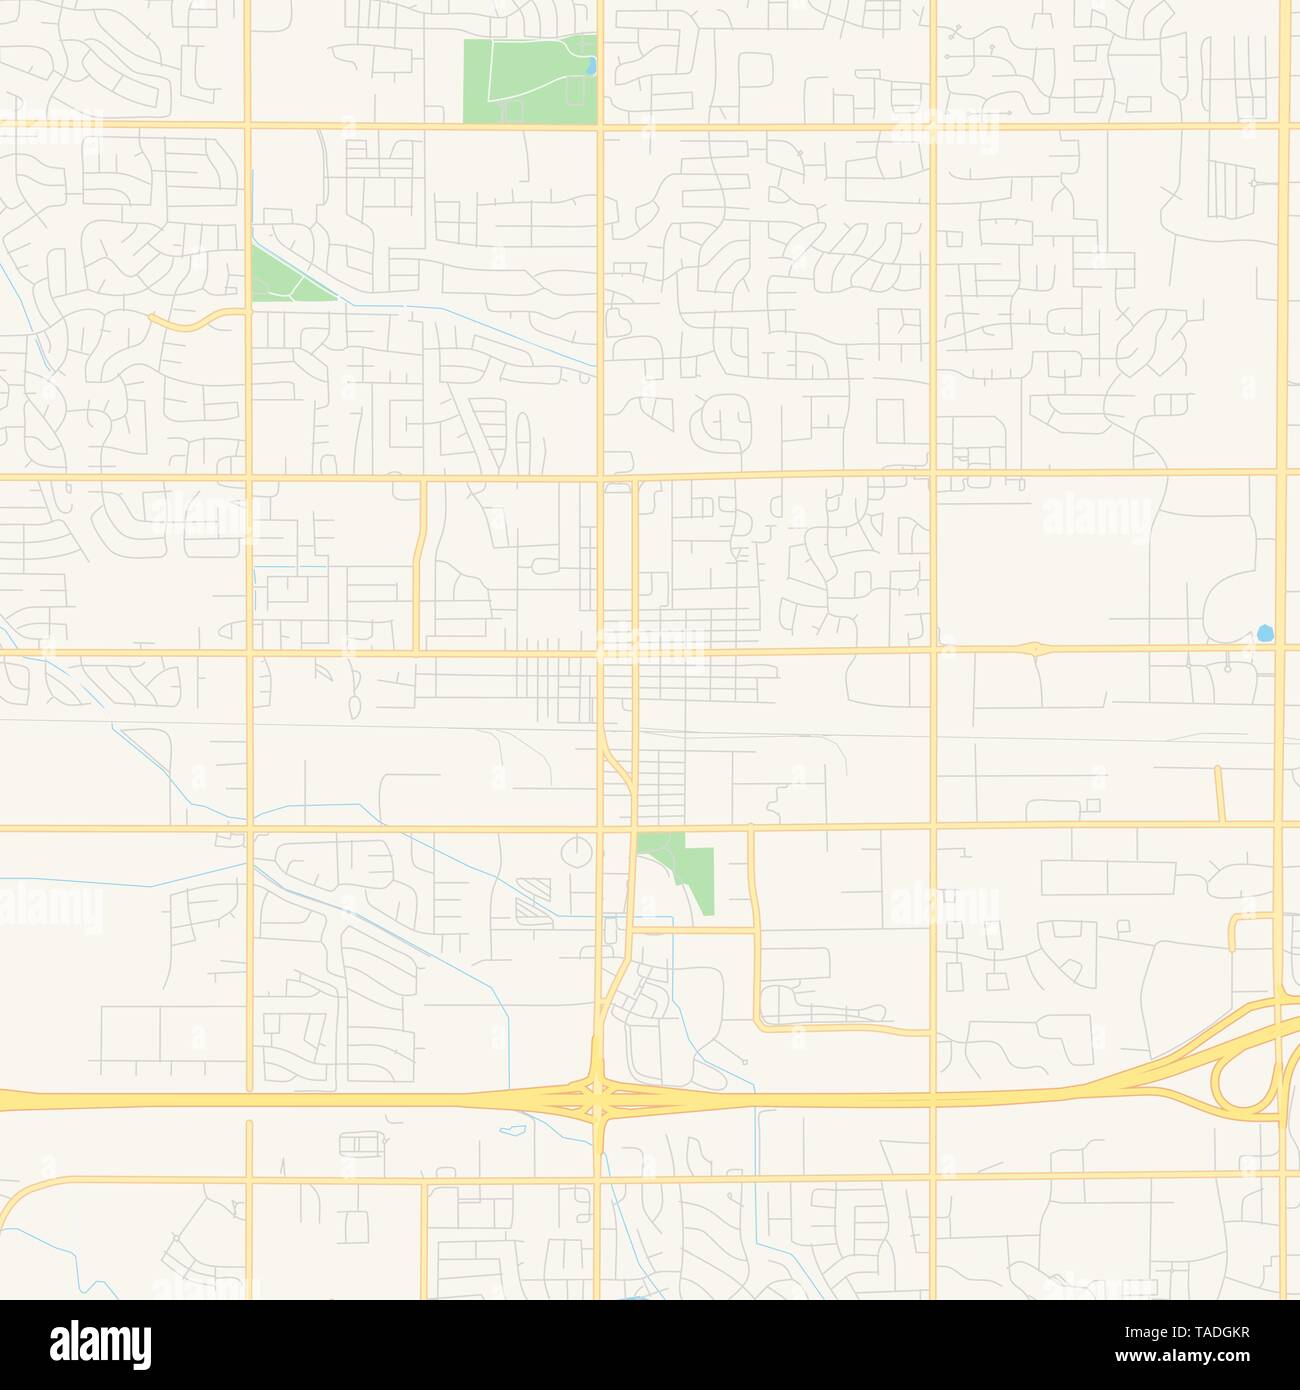 Empty vector map of Meridian, Idaho, USA, printable road map created in classic web colors for infographic backgrounds. - Stock Vector